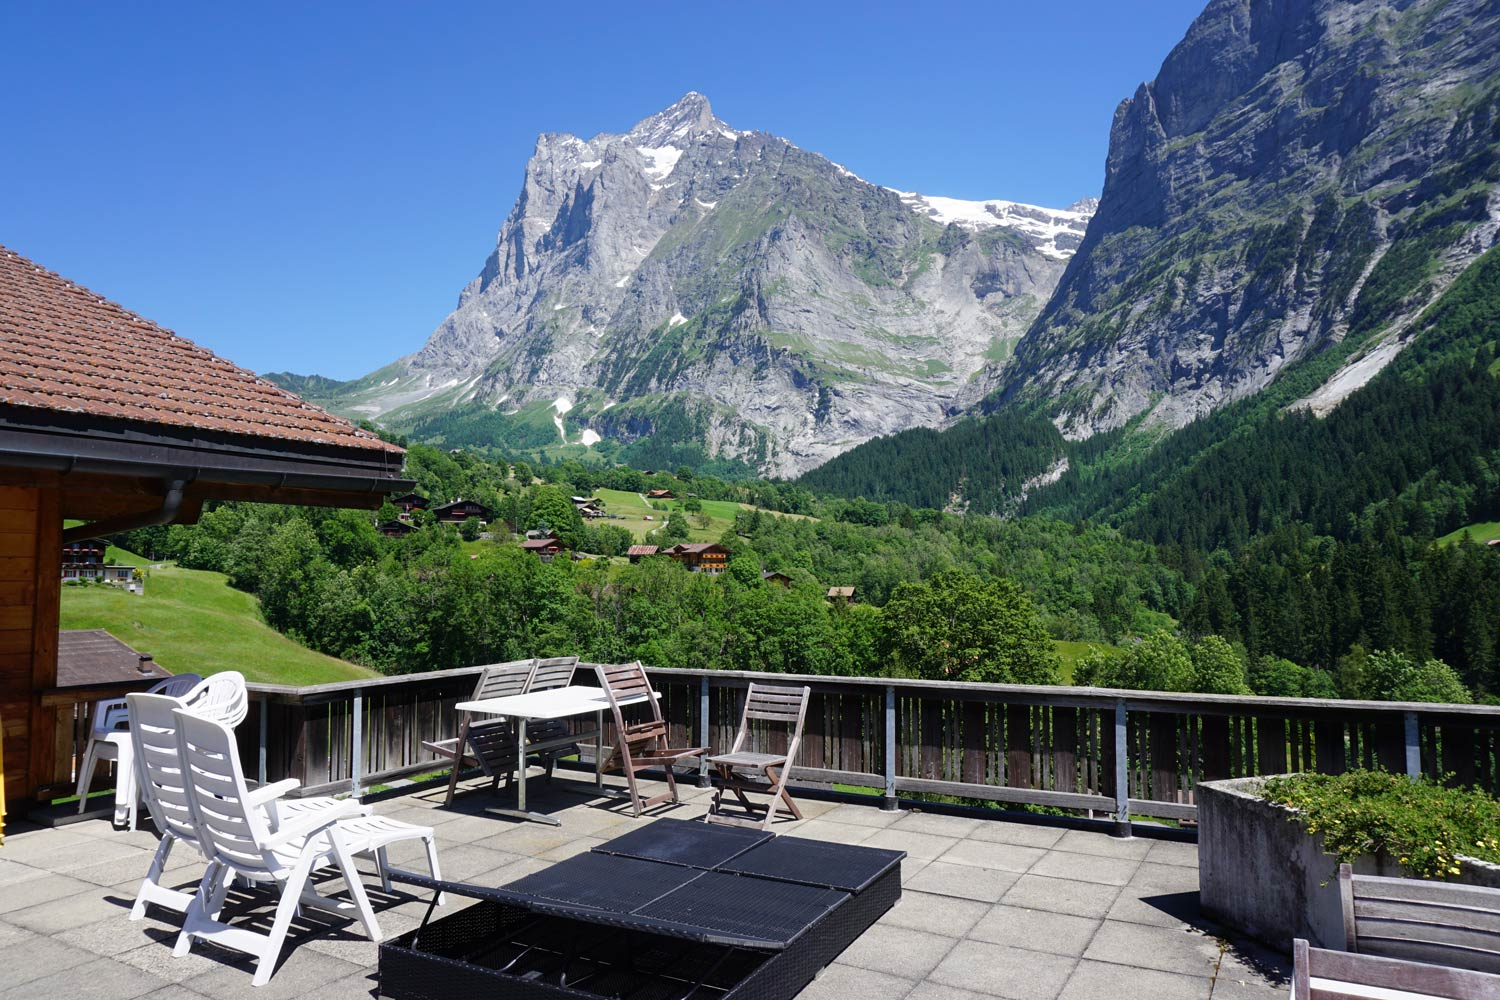 Hotel Alpenblick - rooms lookup 44